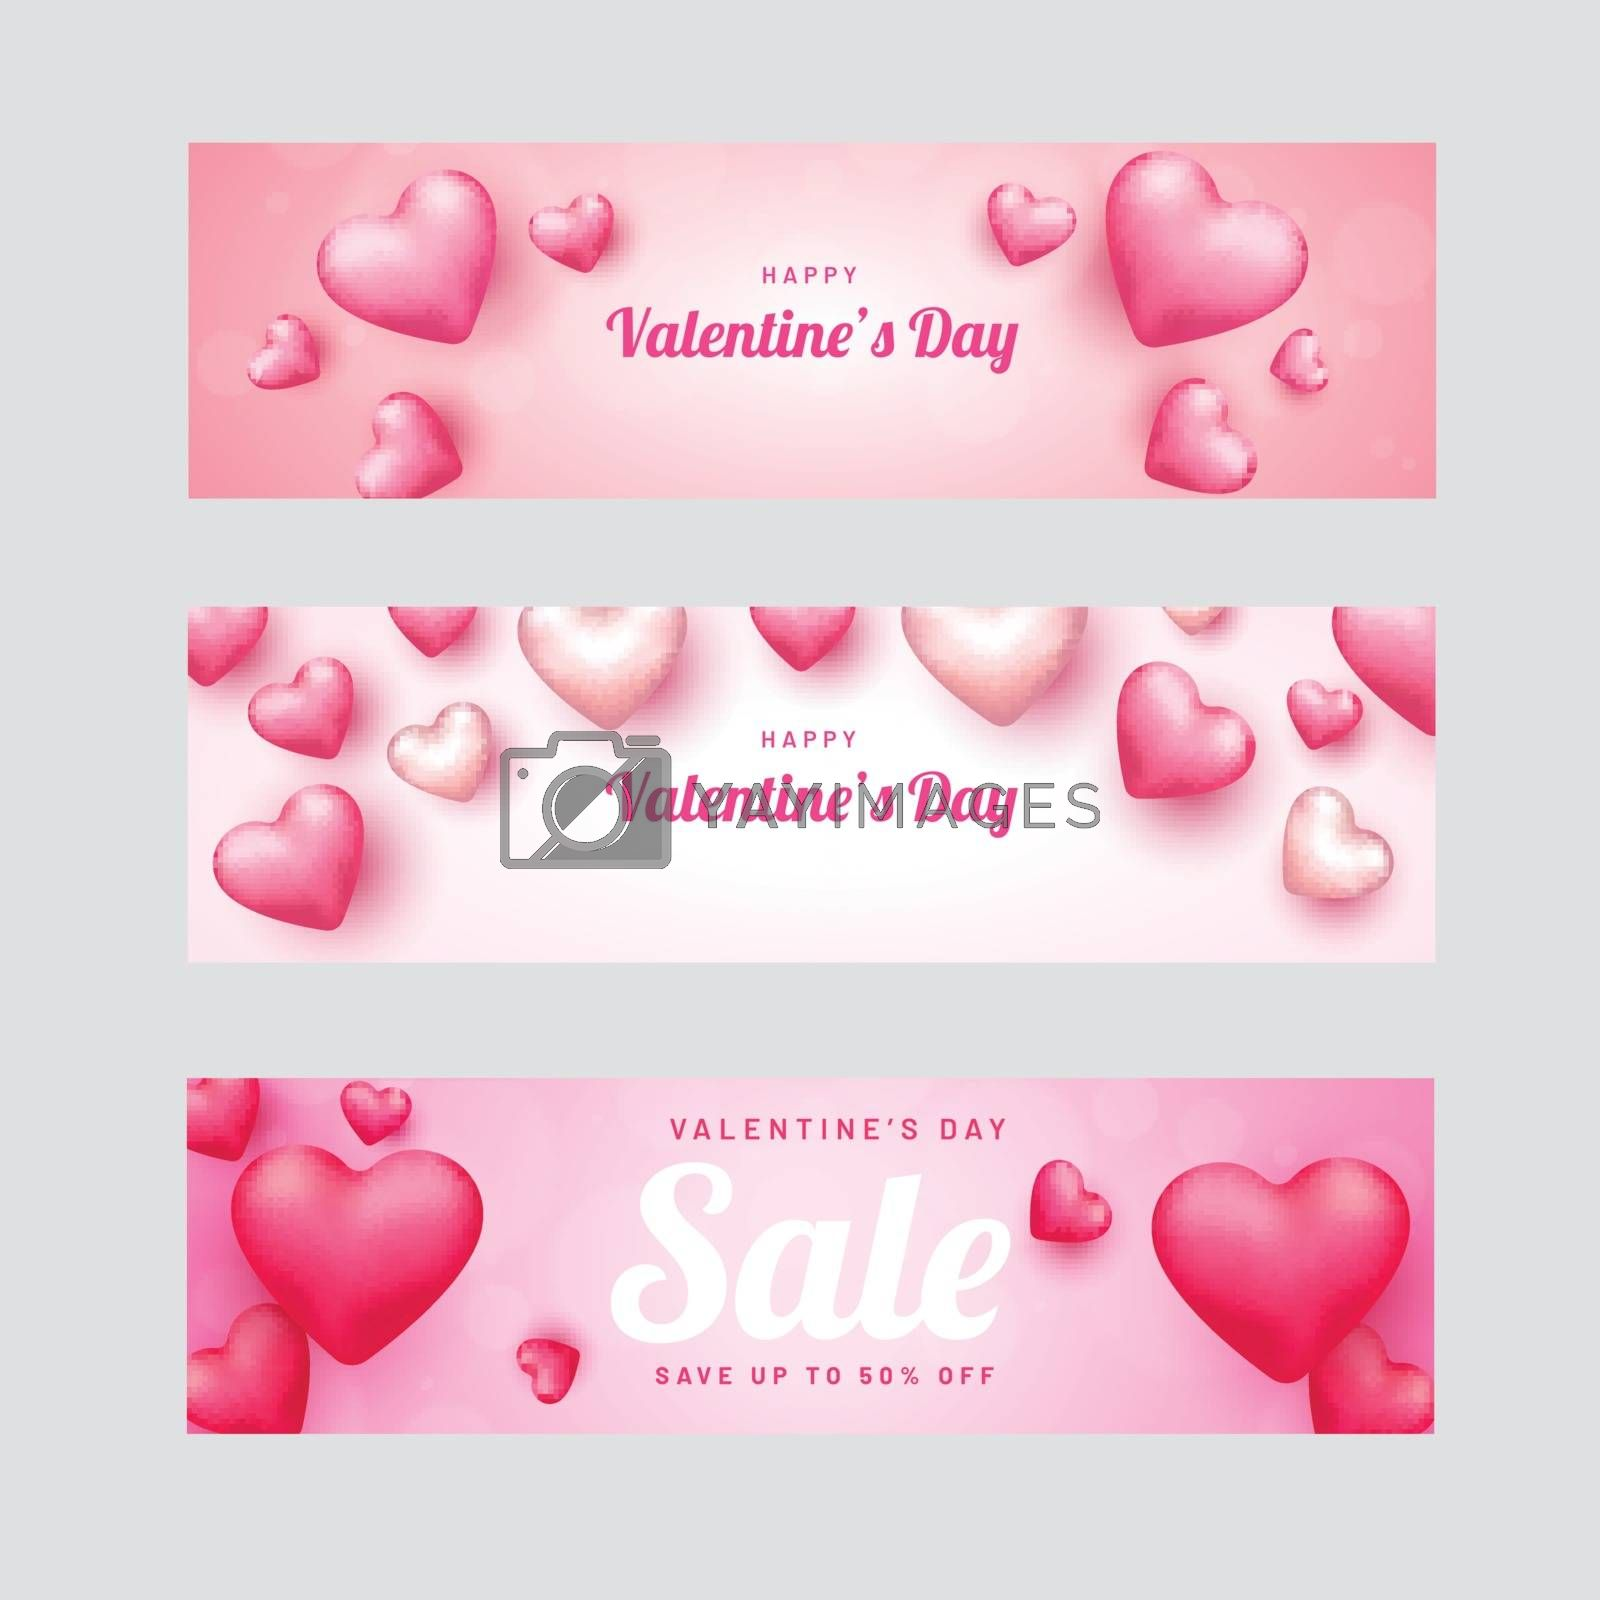 Promotional header or banner set for Valentine's Day decorated w by aispl